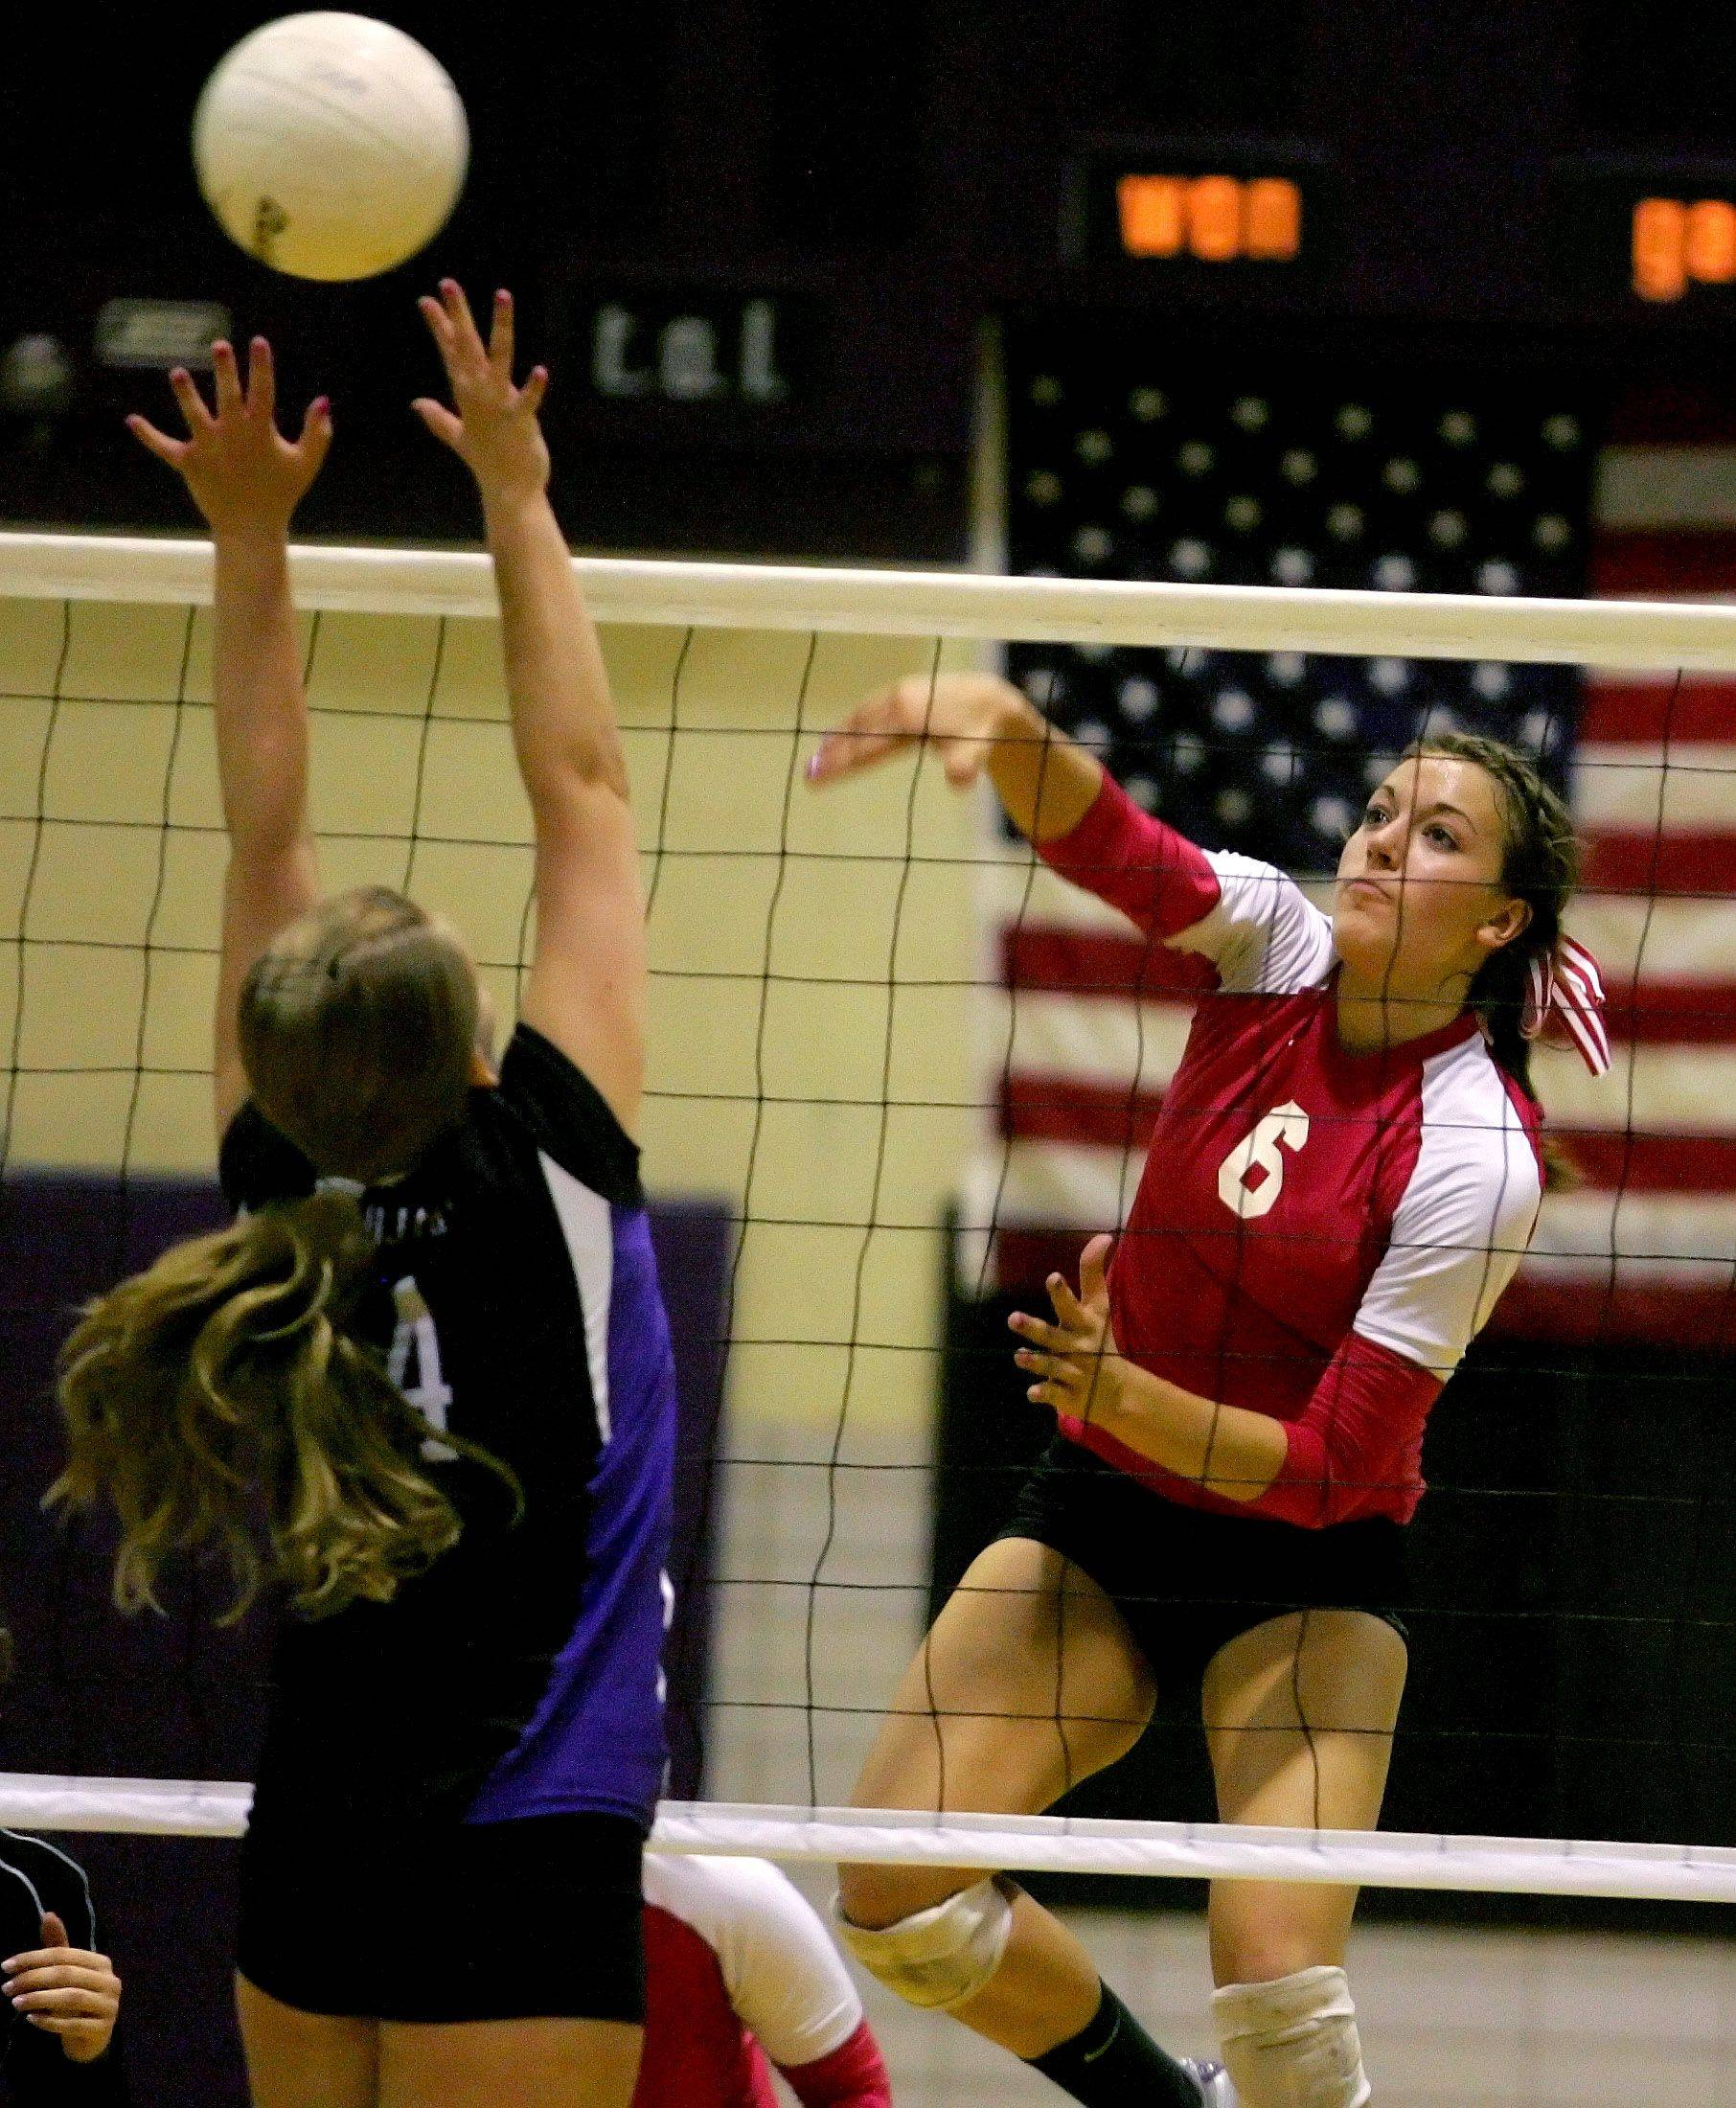 Alysia Baznik of Naperville Central hits the ball past Katie Canning of Downers Grove North in girls volleyball action Tuesday in Downers Grove.